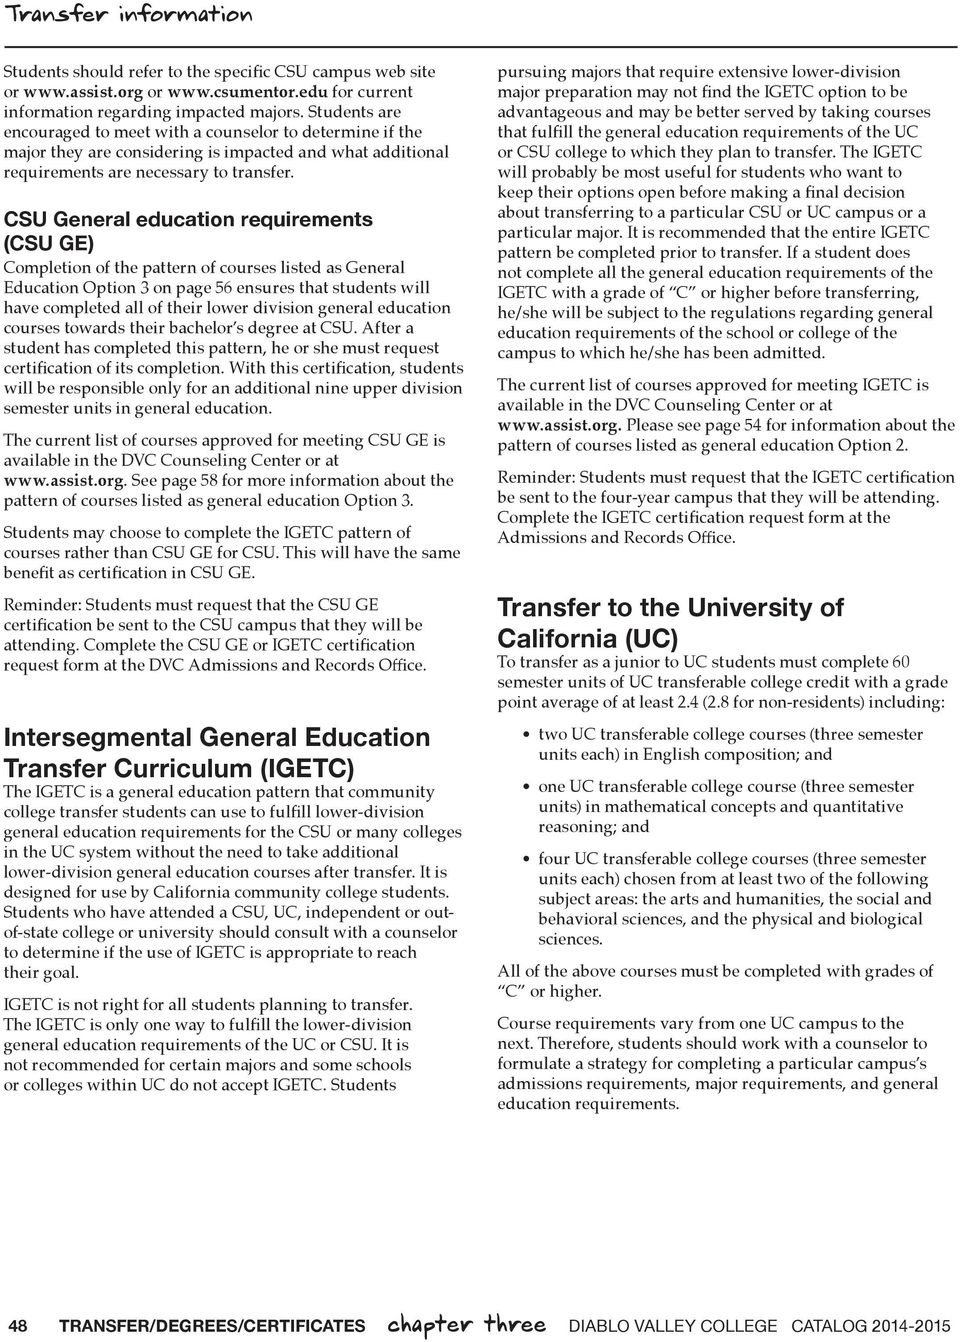 Transfer Degrees And Certificates Pdf